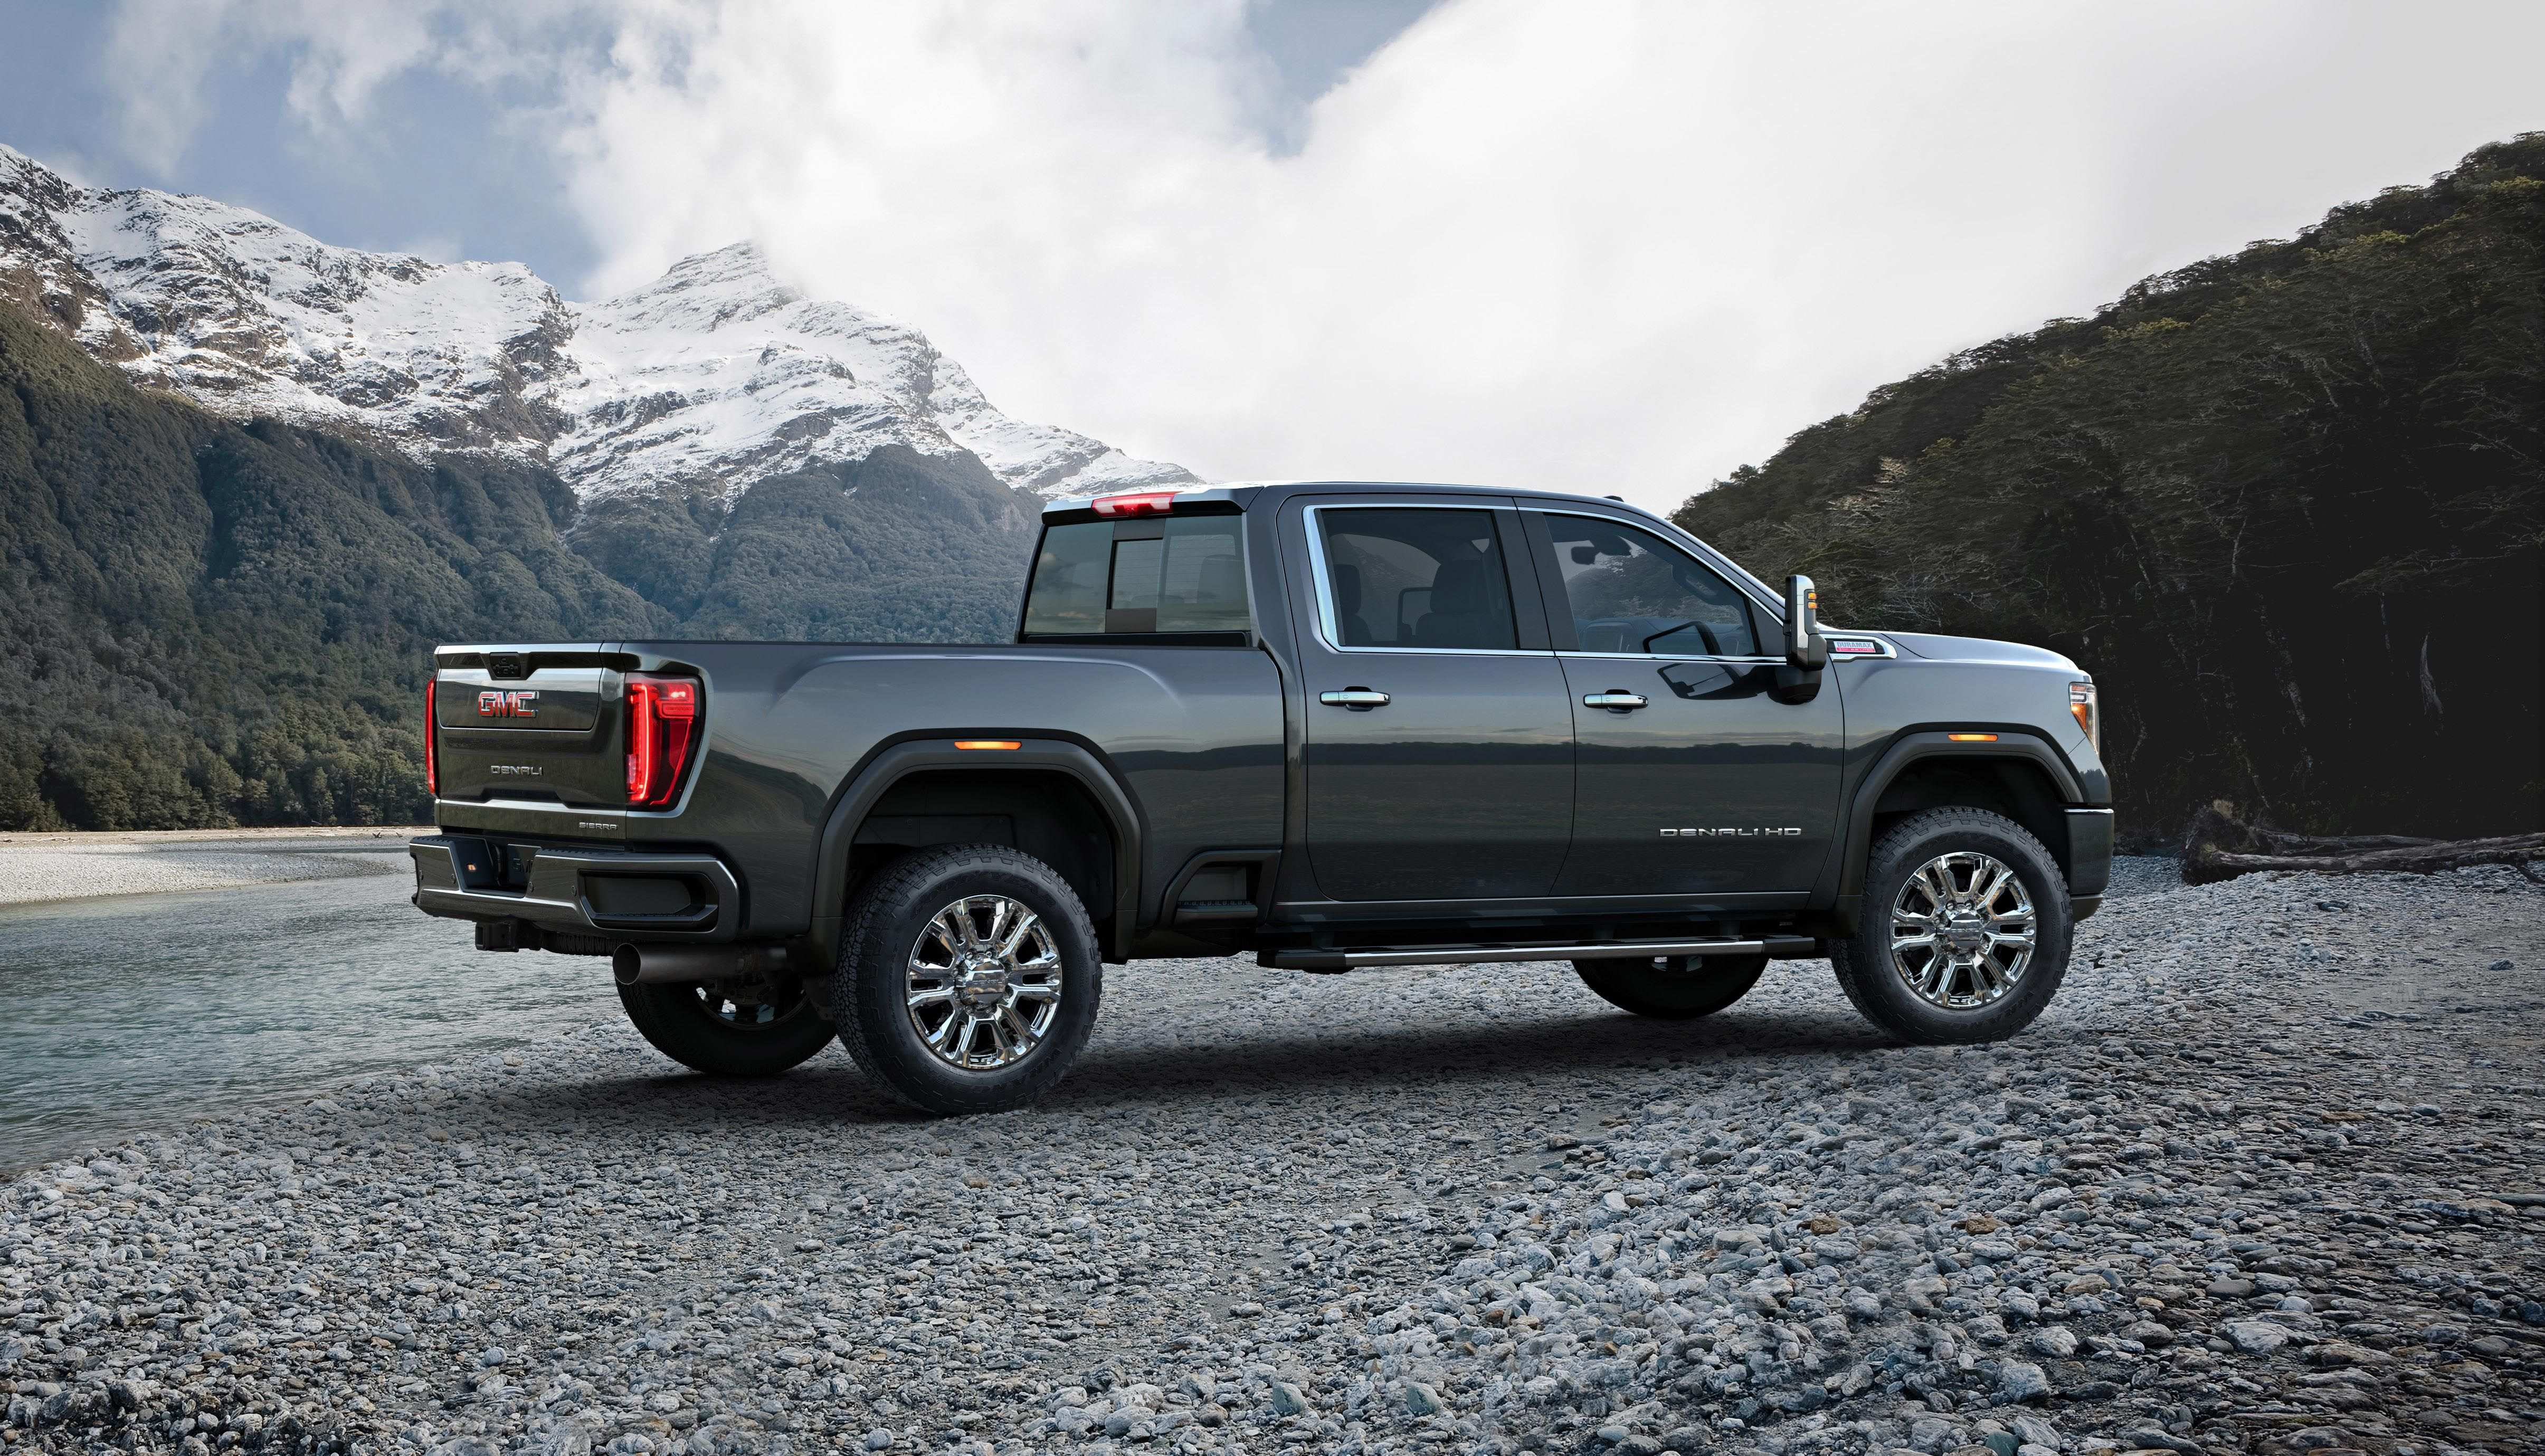 37 The GMC Hd Sierra 2020 Specs